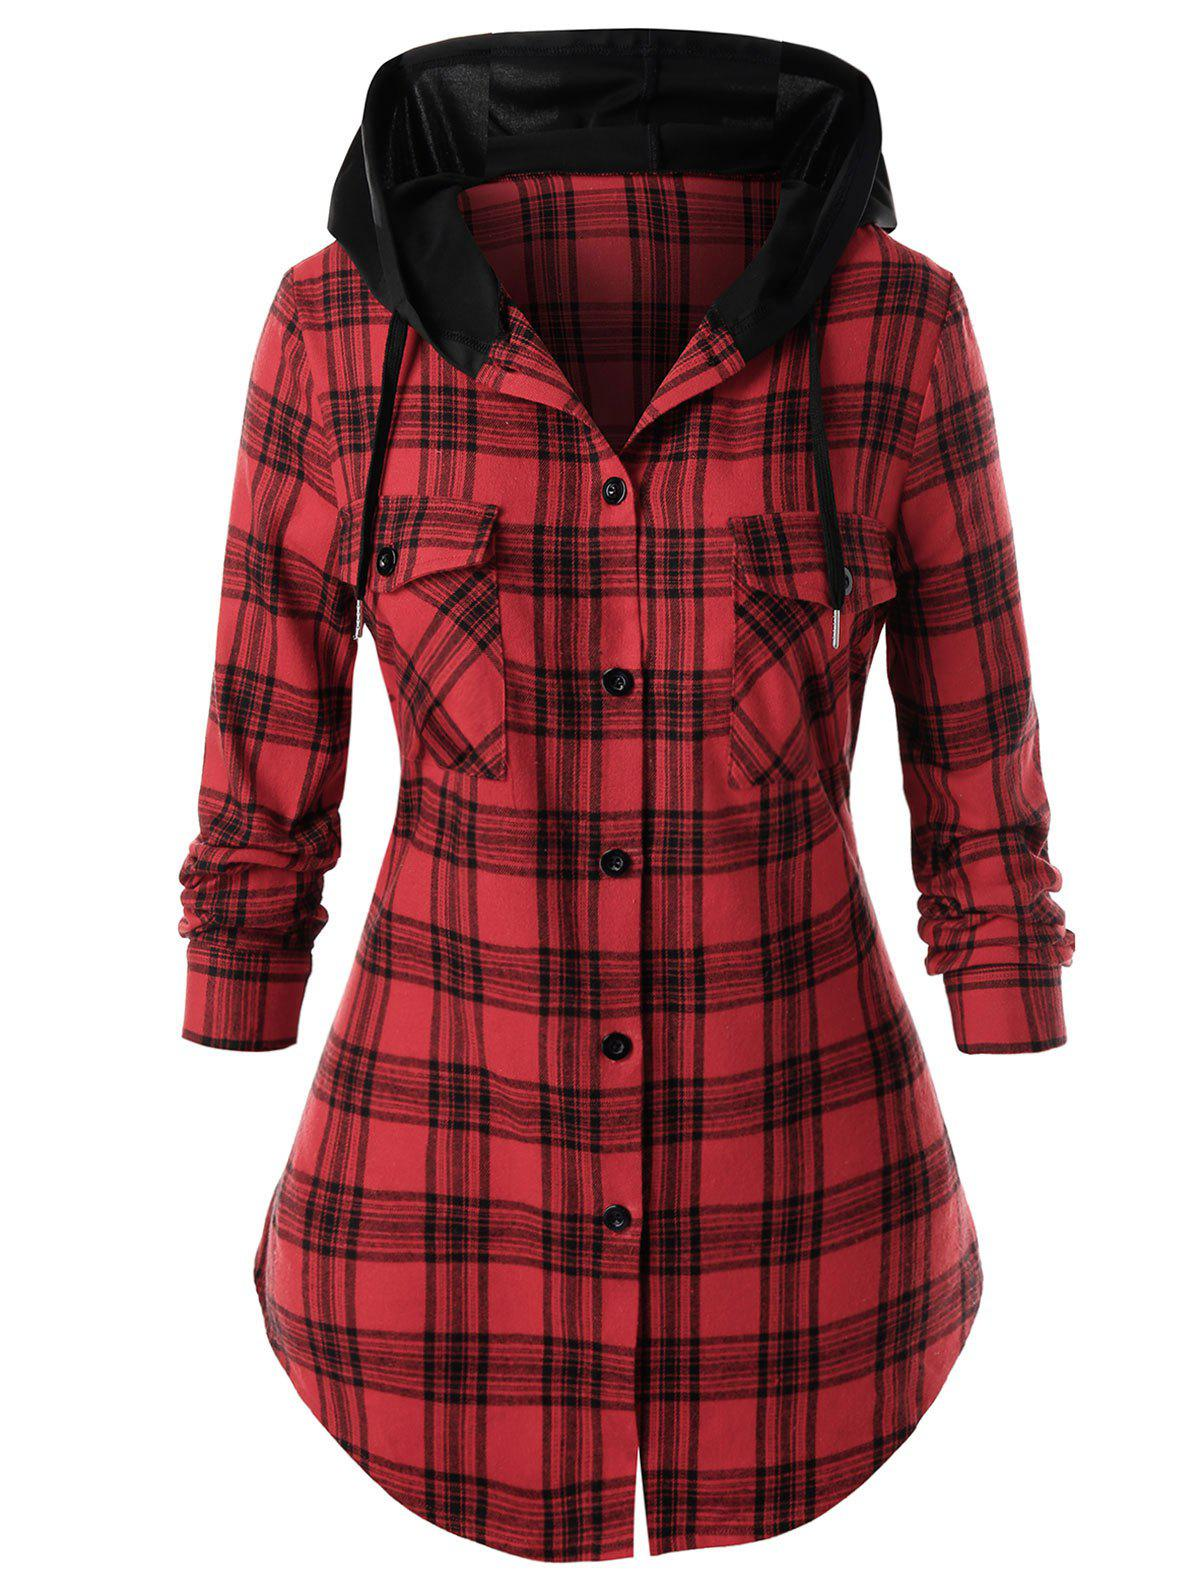 Sale Plus Size Plaid Hooded Curved Pocket Tunic Shirt